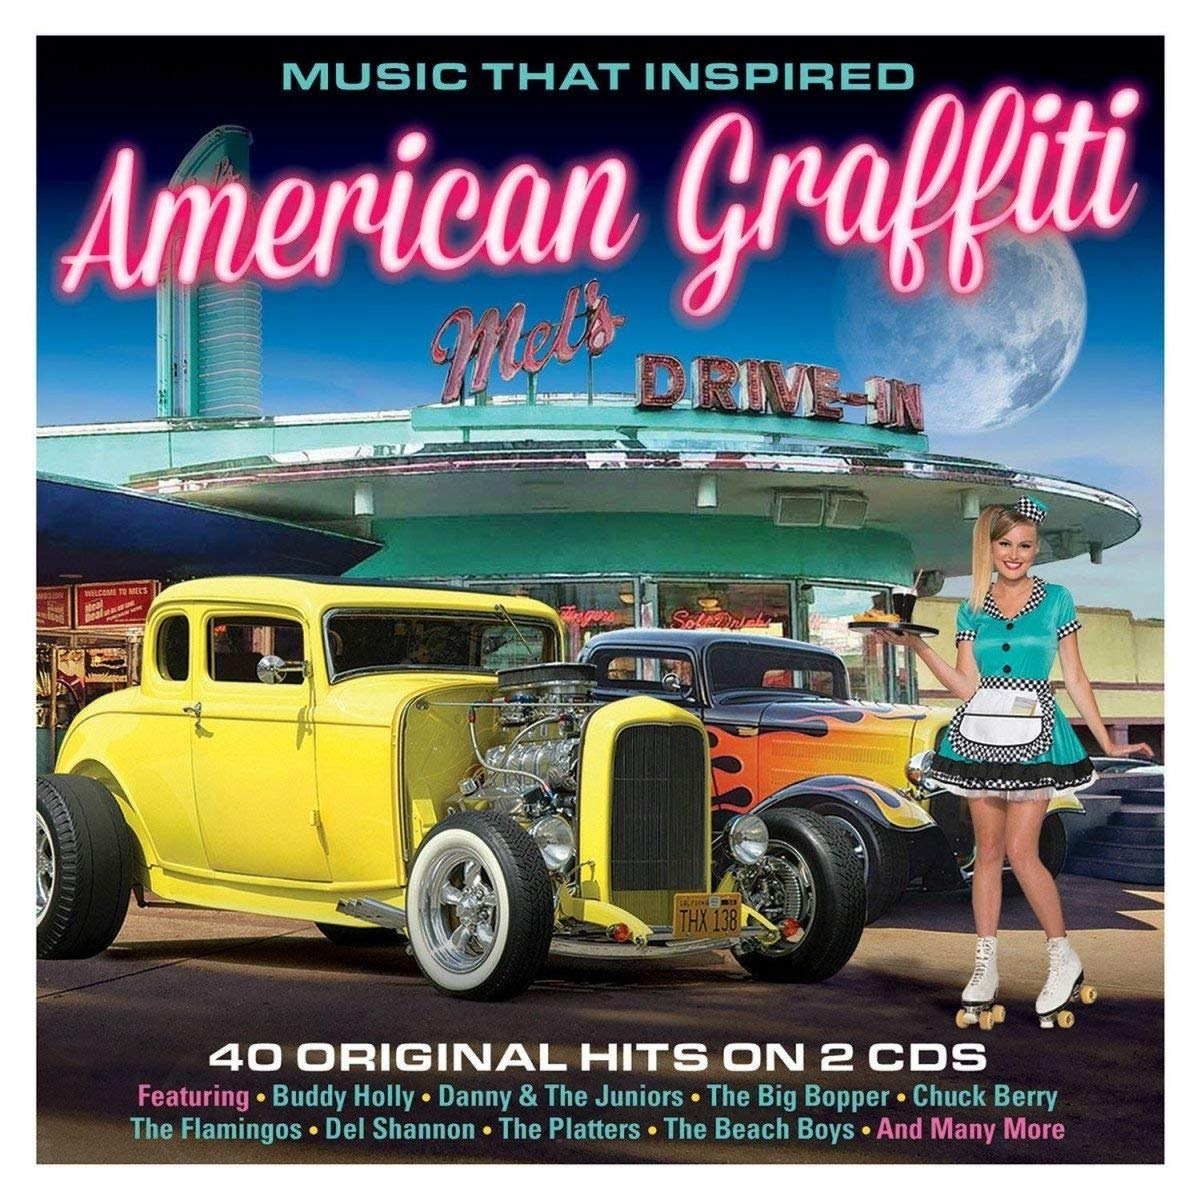 MUSIC THAT INSPIRED AMERICAN GRAFFITTI: Buddy Holly, Danny & The Juniors, Big Bopper, Chuck Berry, Del Shannon